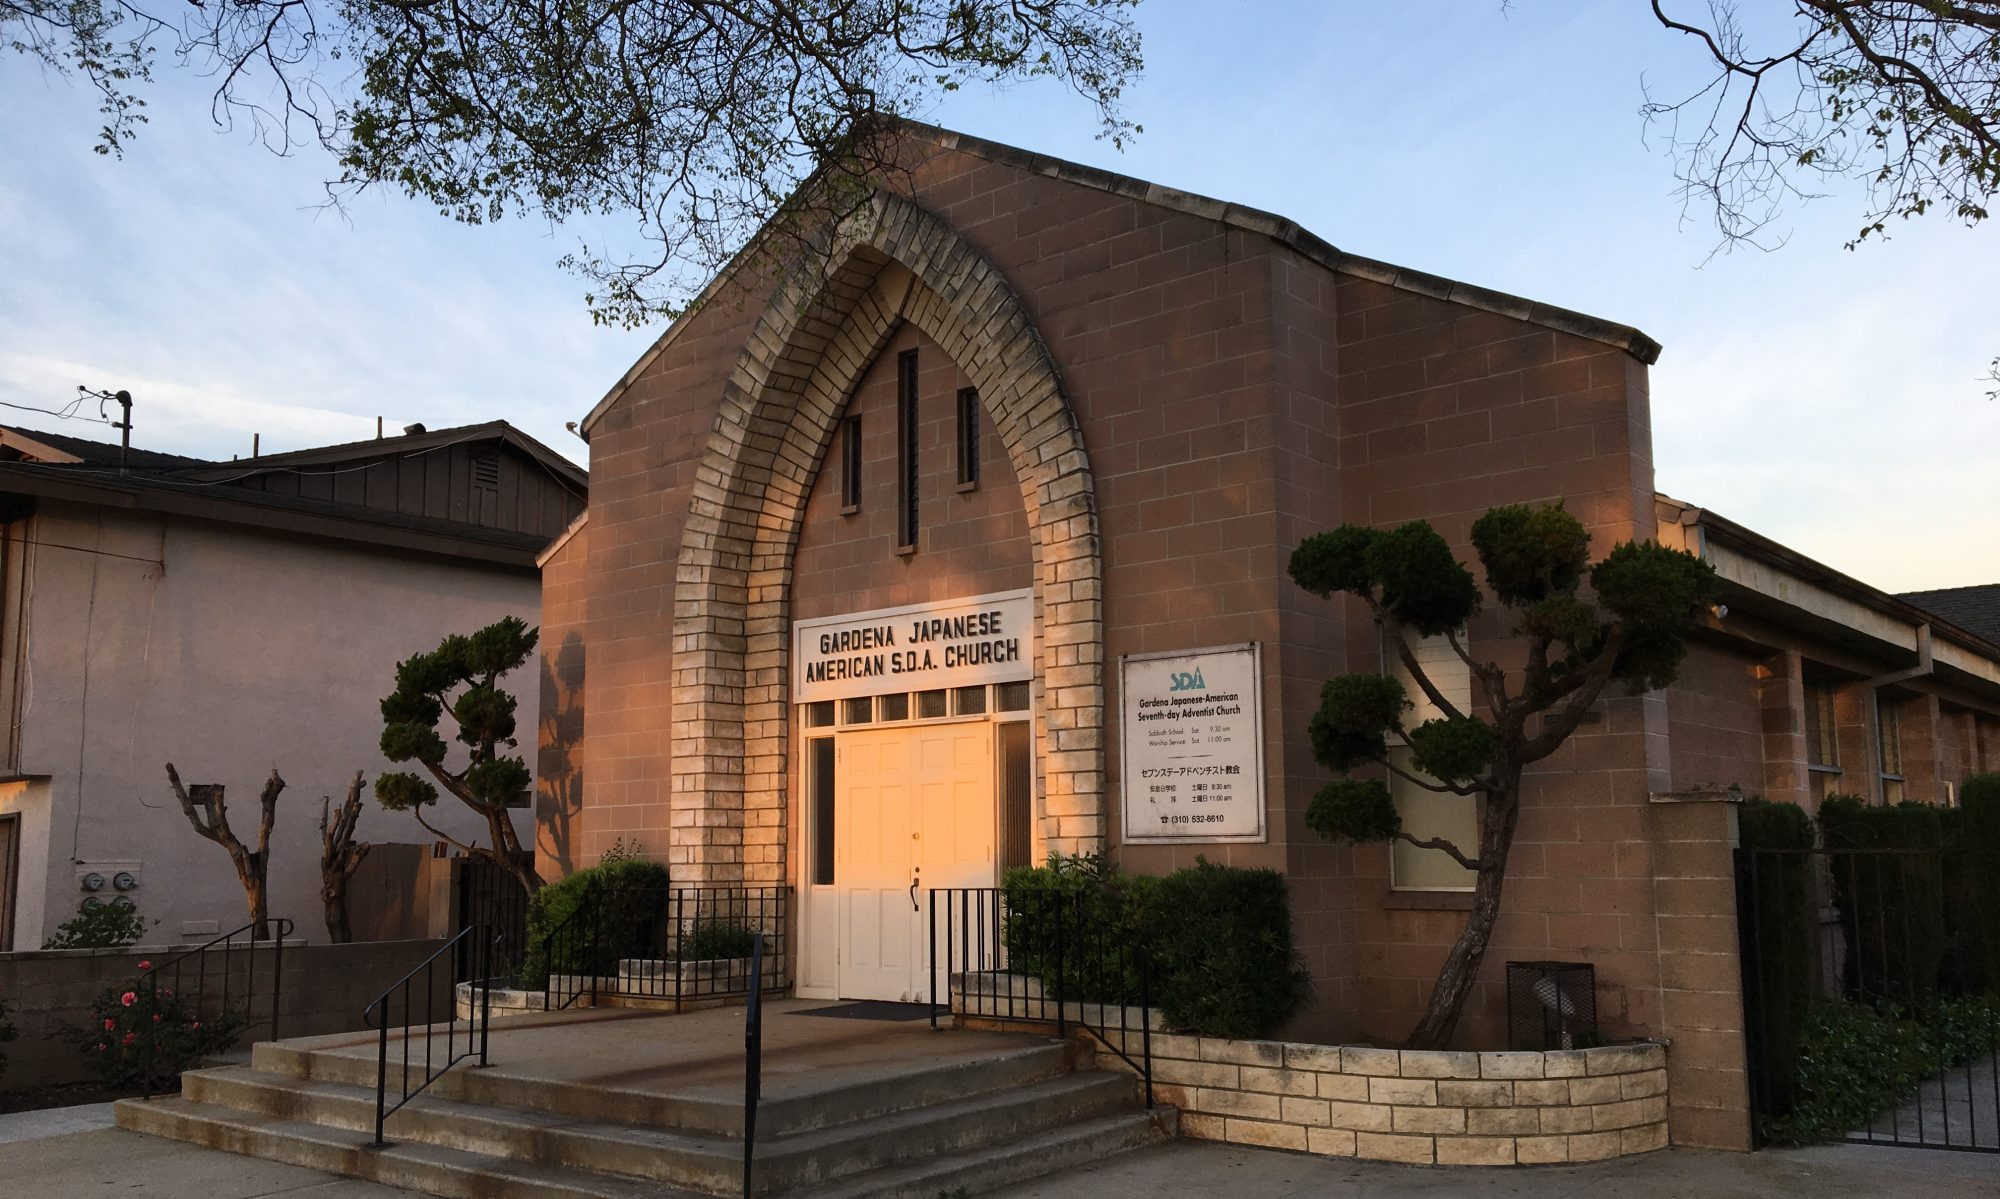 Gardena Japanese-American S.D.A. Church